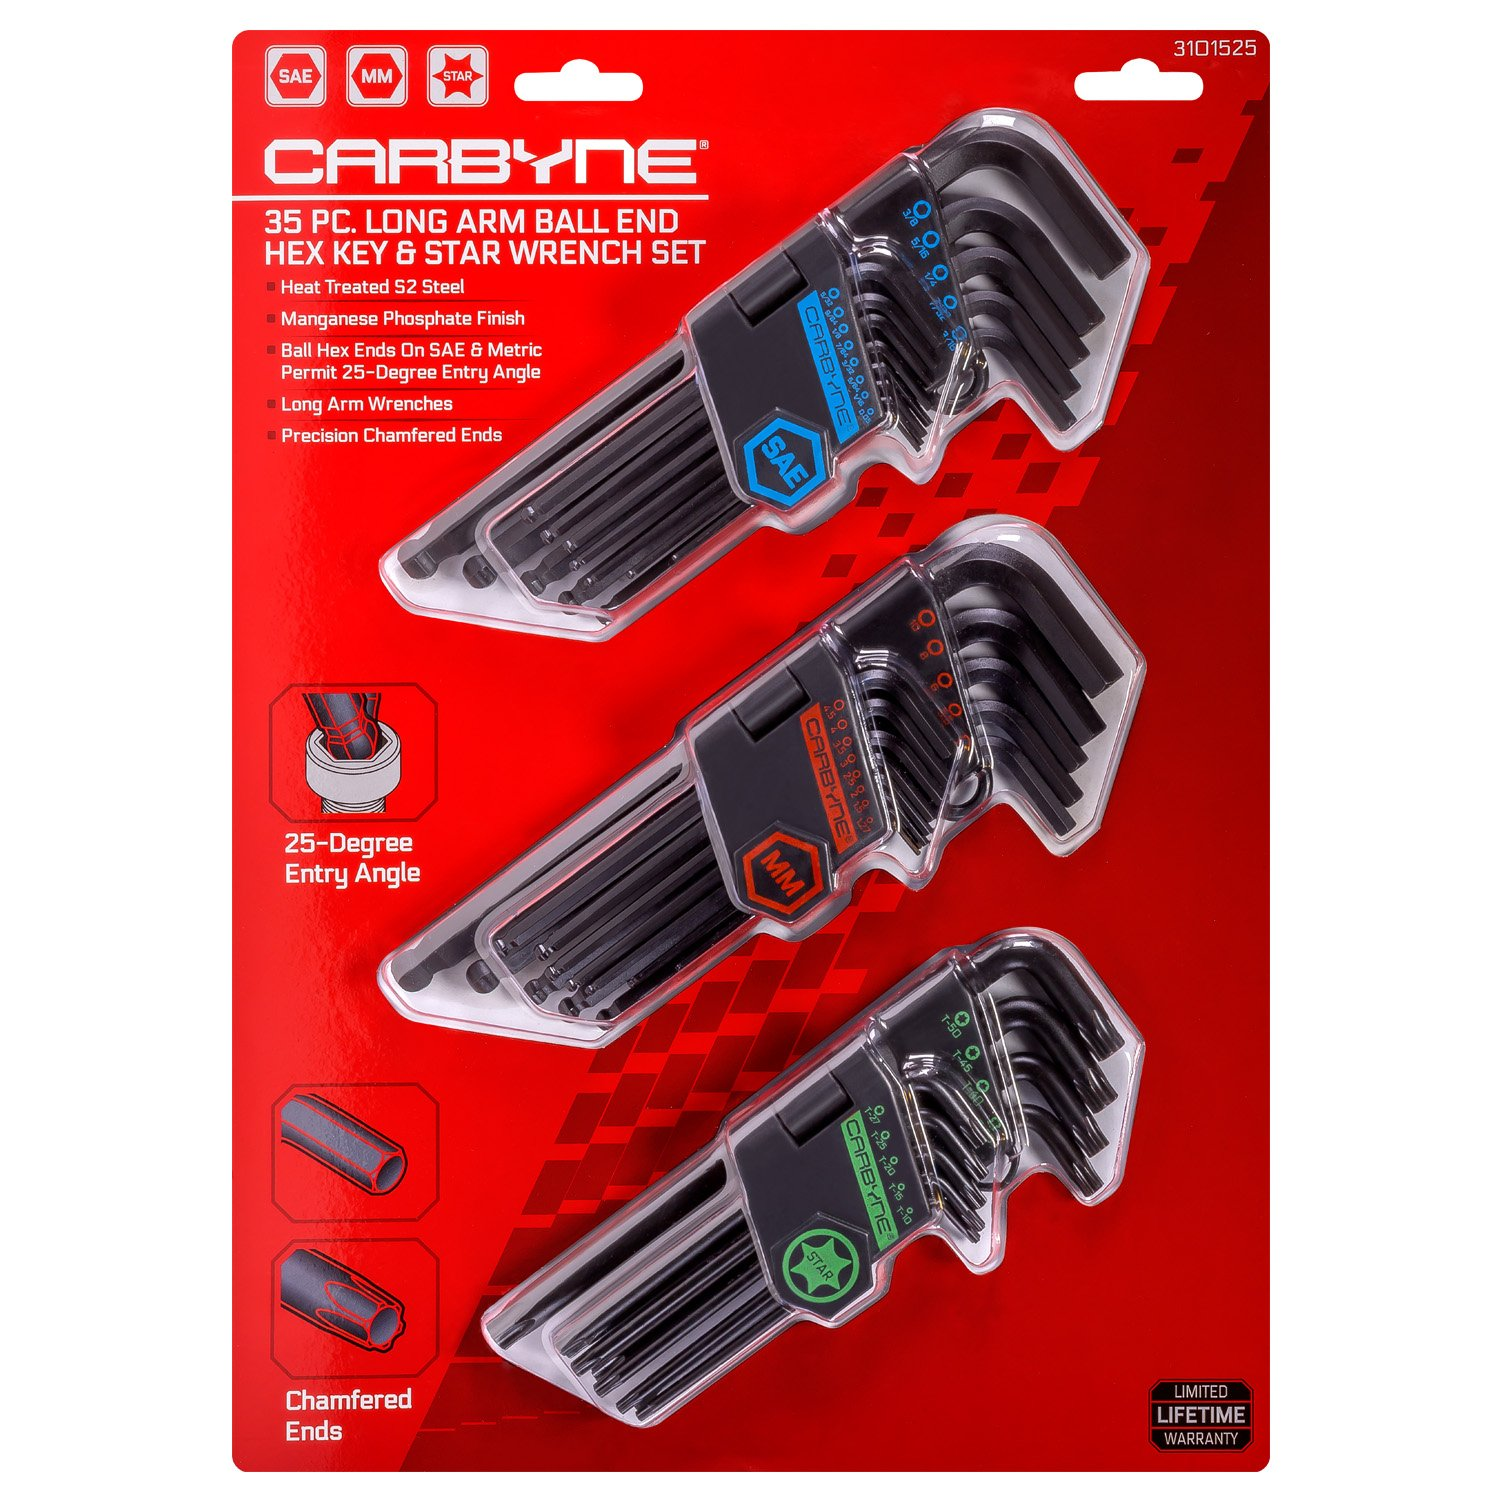 CARBYNE 35 Piece Long Arm Ball End Hex Key Wrench Set, Inch/Metric/Star, S2 Steel by Carbyne (Image #1)